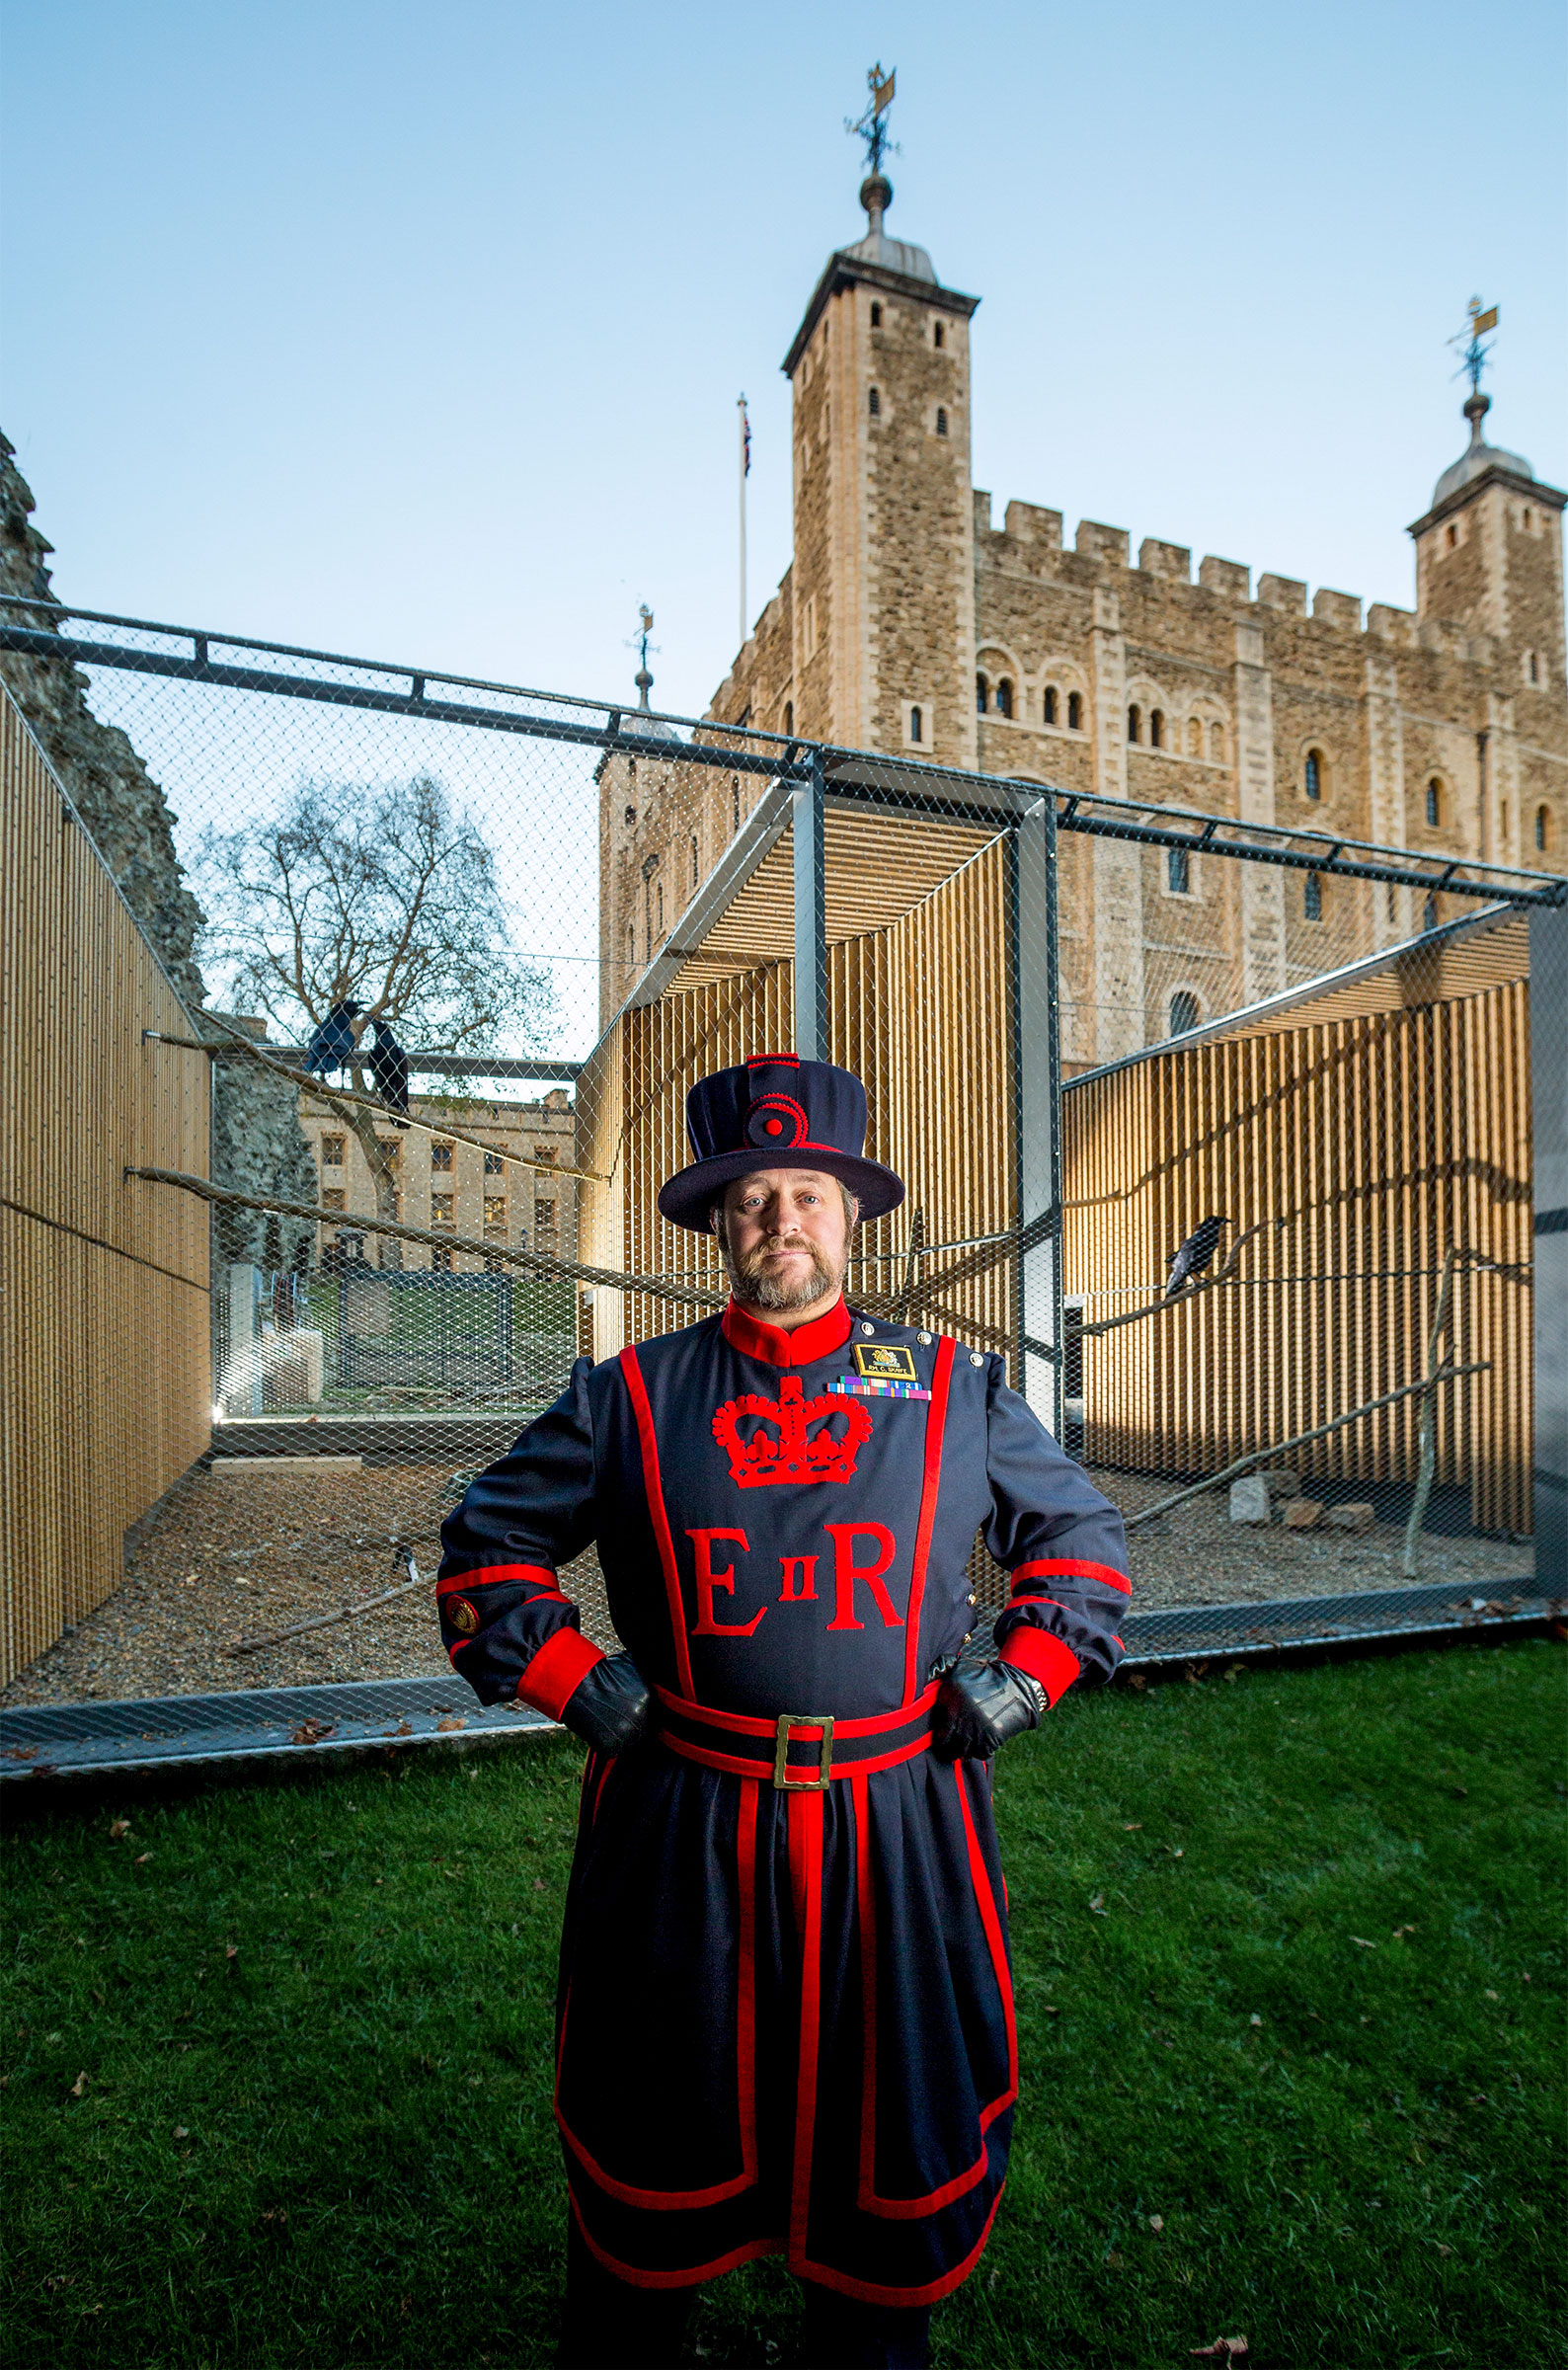 Christopher Skaife, Beefeater and Ravenmaster. Courtesy of Historical Royal Palaces Enterprises, Ltd.